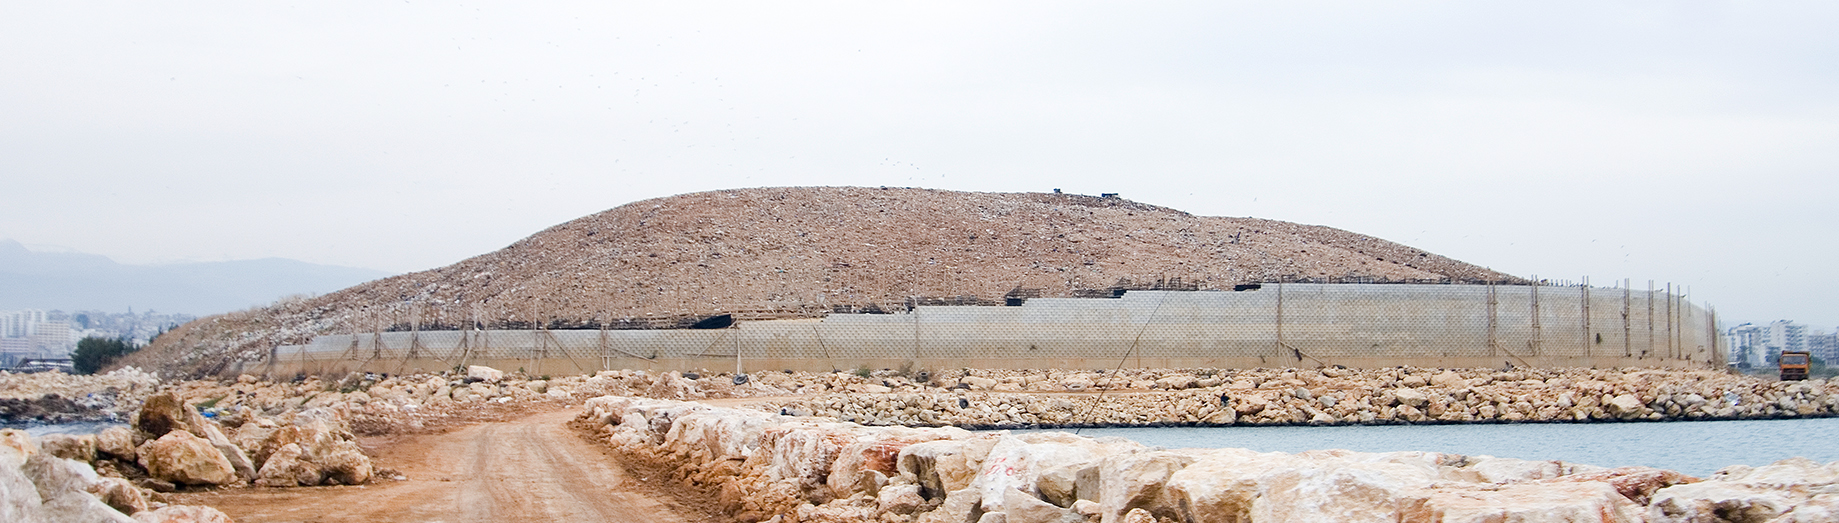 Construction, O&M of the Tripoli Landfill (Phases I, II, III & IV)